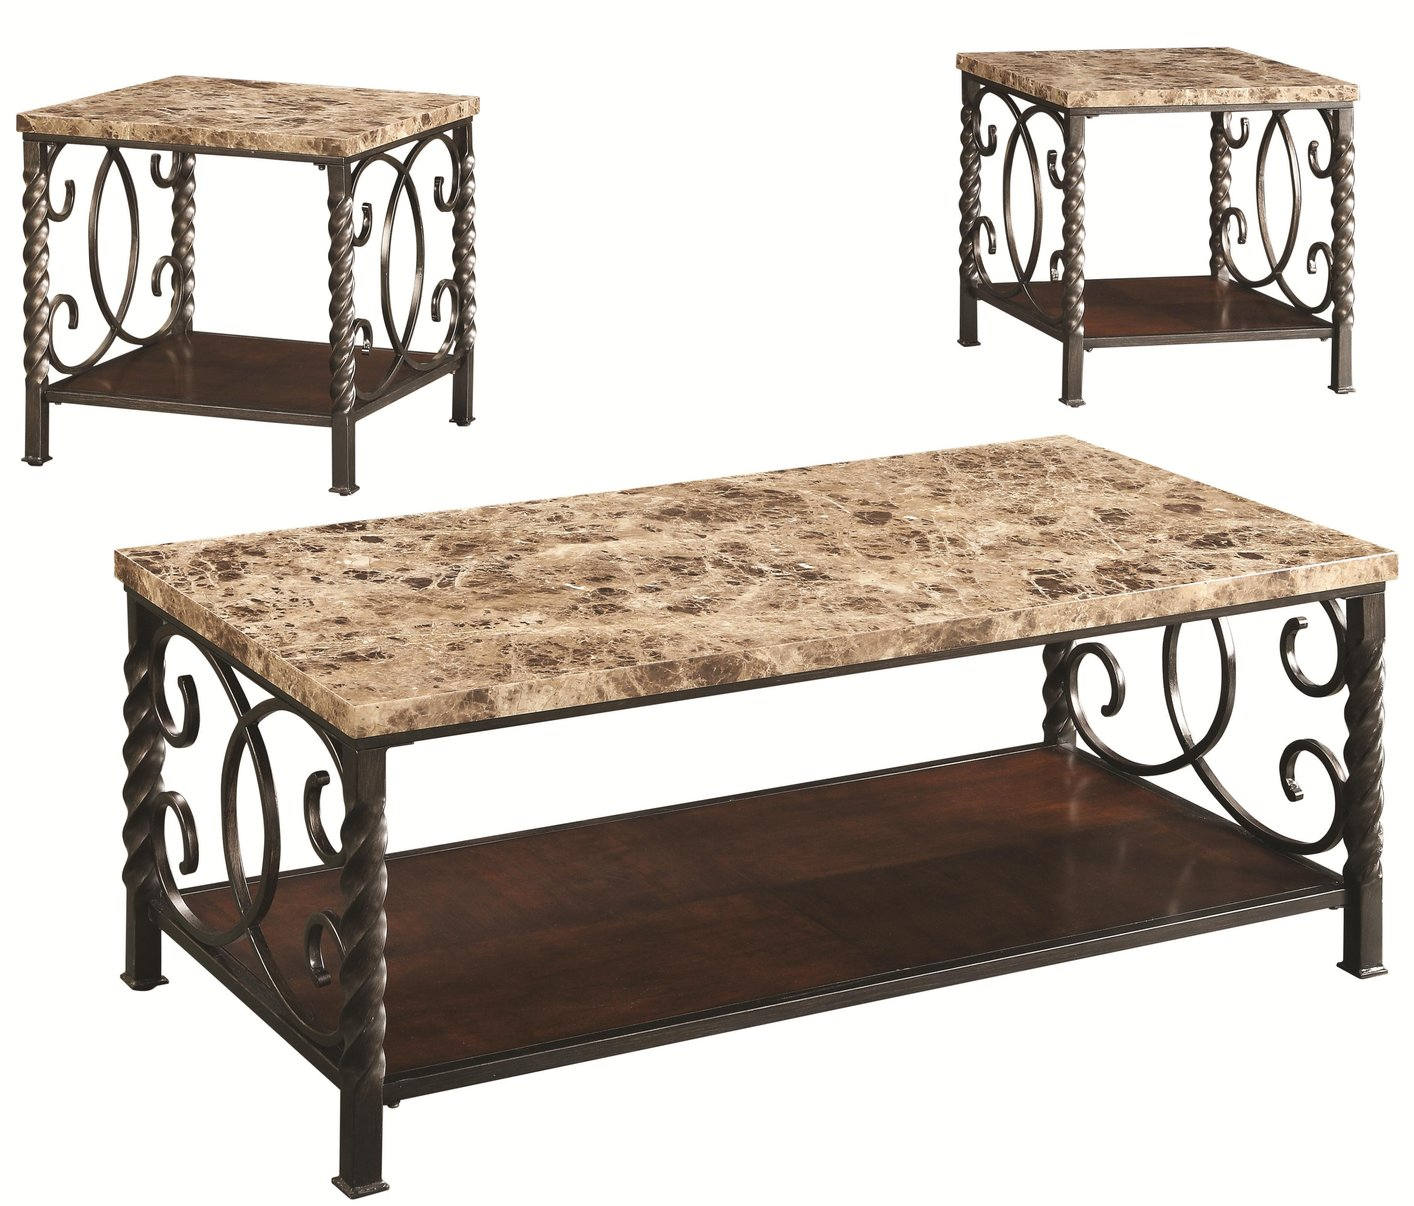 Marble Coffee Table Leather Sofa: Coaster Lockhart 701695 Brown Marble Coffee Table Set